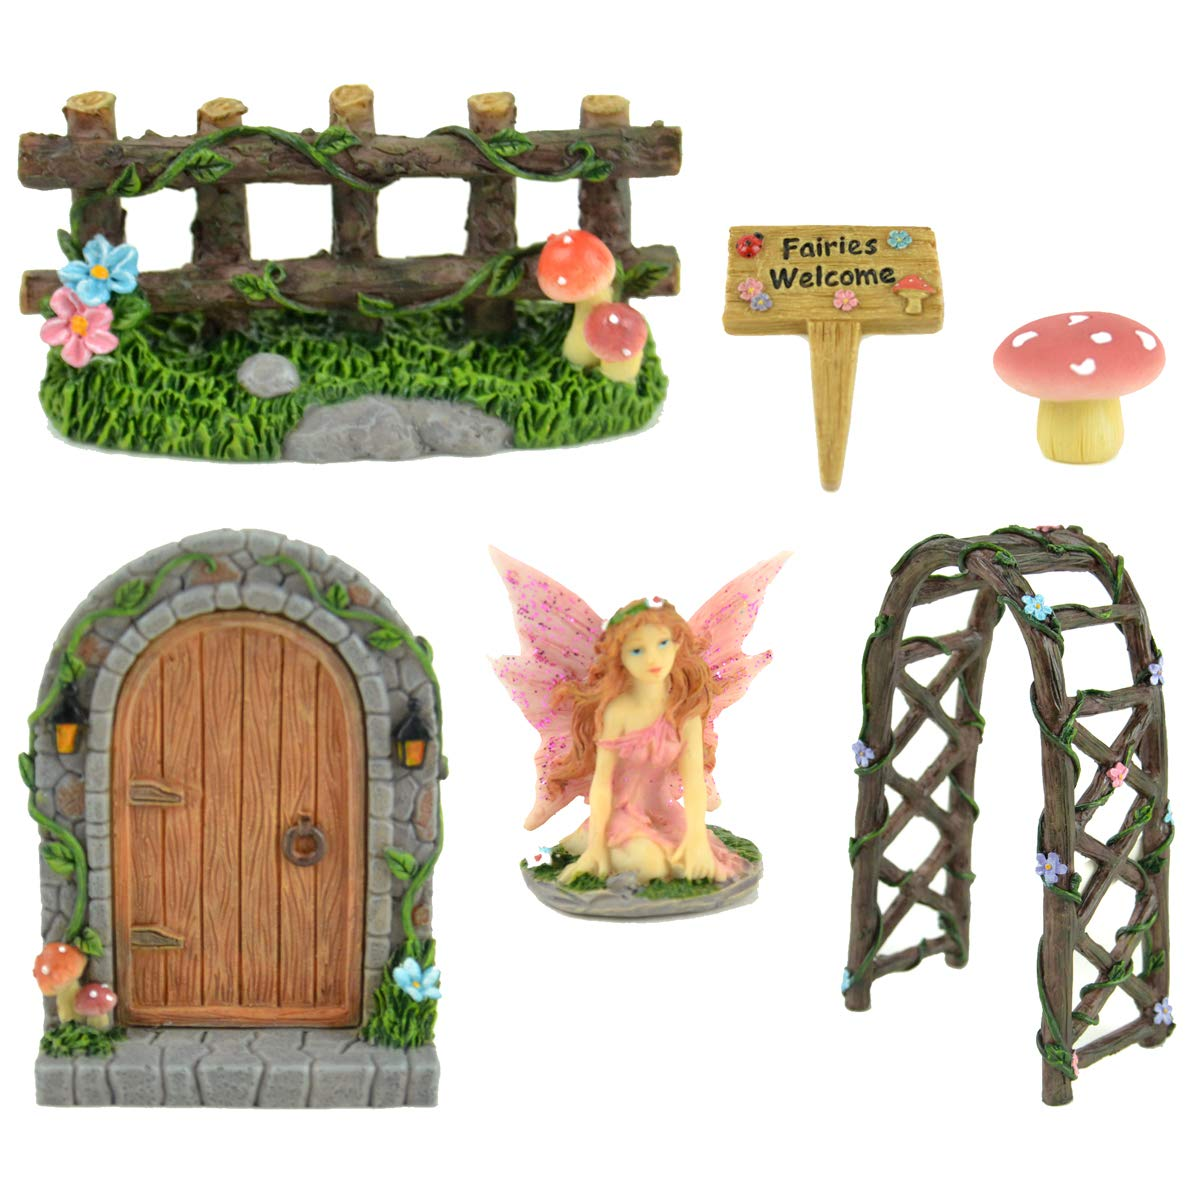 Midwest Design Imports, Inc. Miniature 6 pc Fairy Garden Kit - Door, Fairy, Sign, Arbor, Fence, and Mushroom